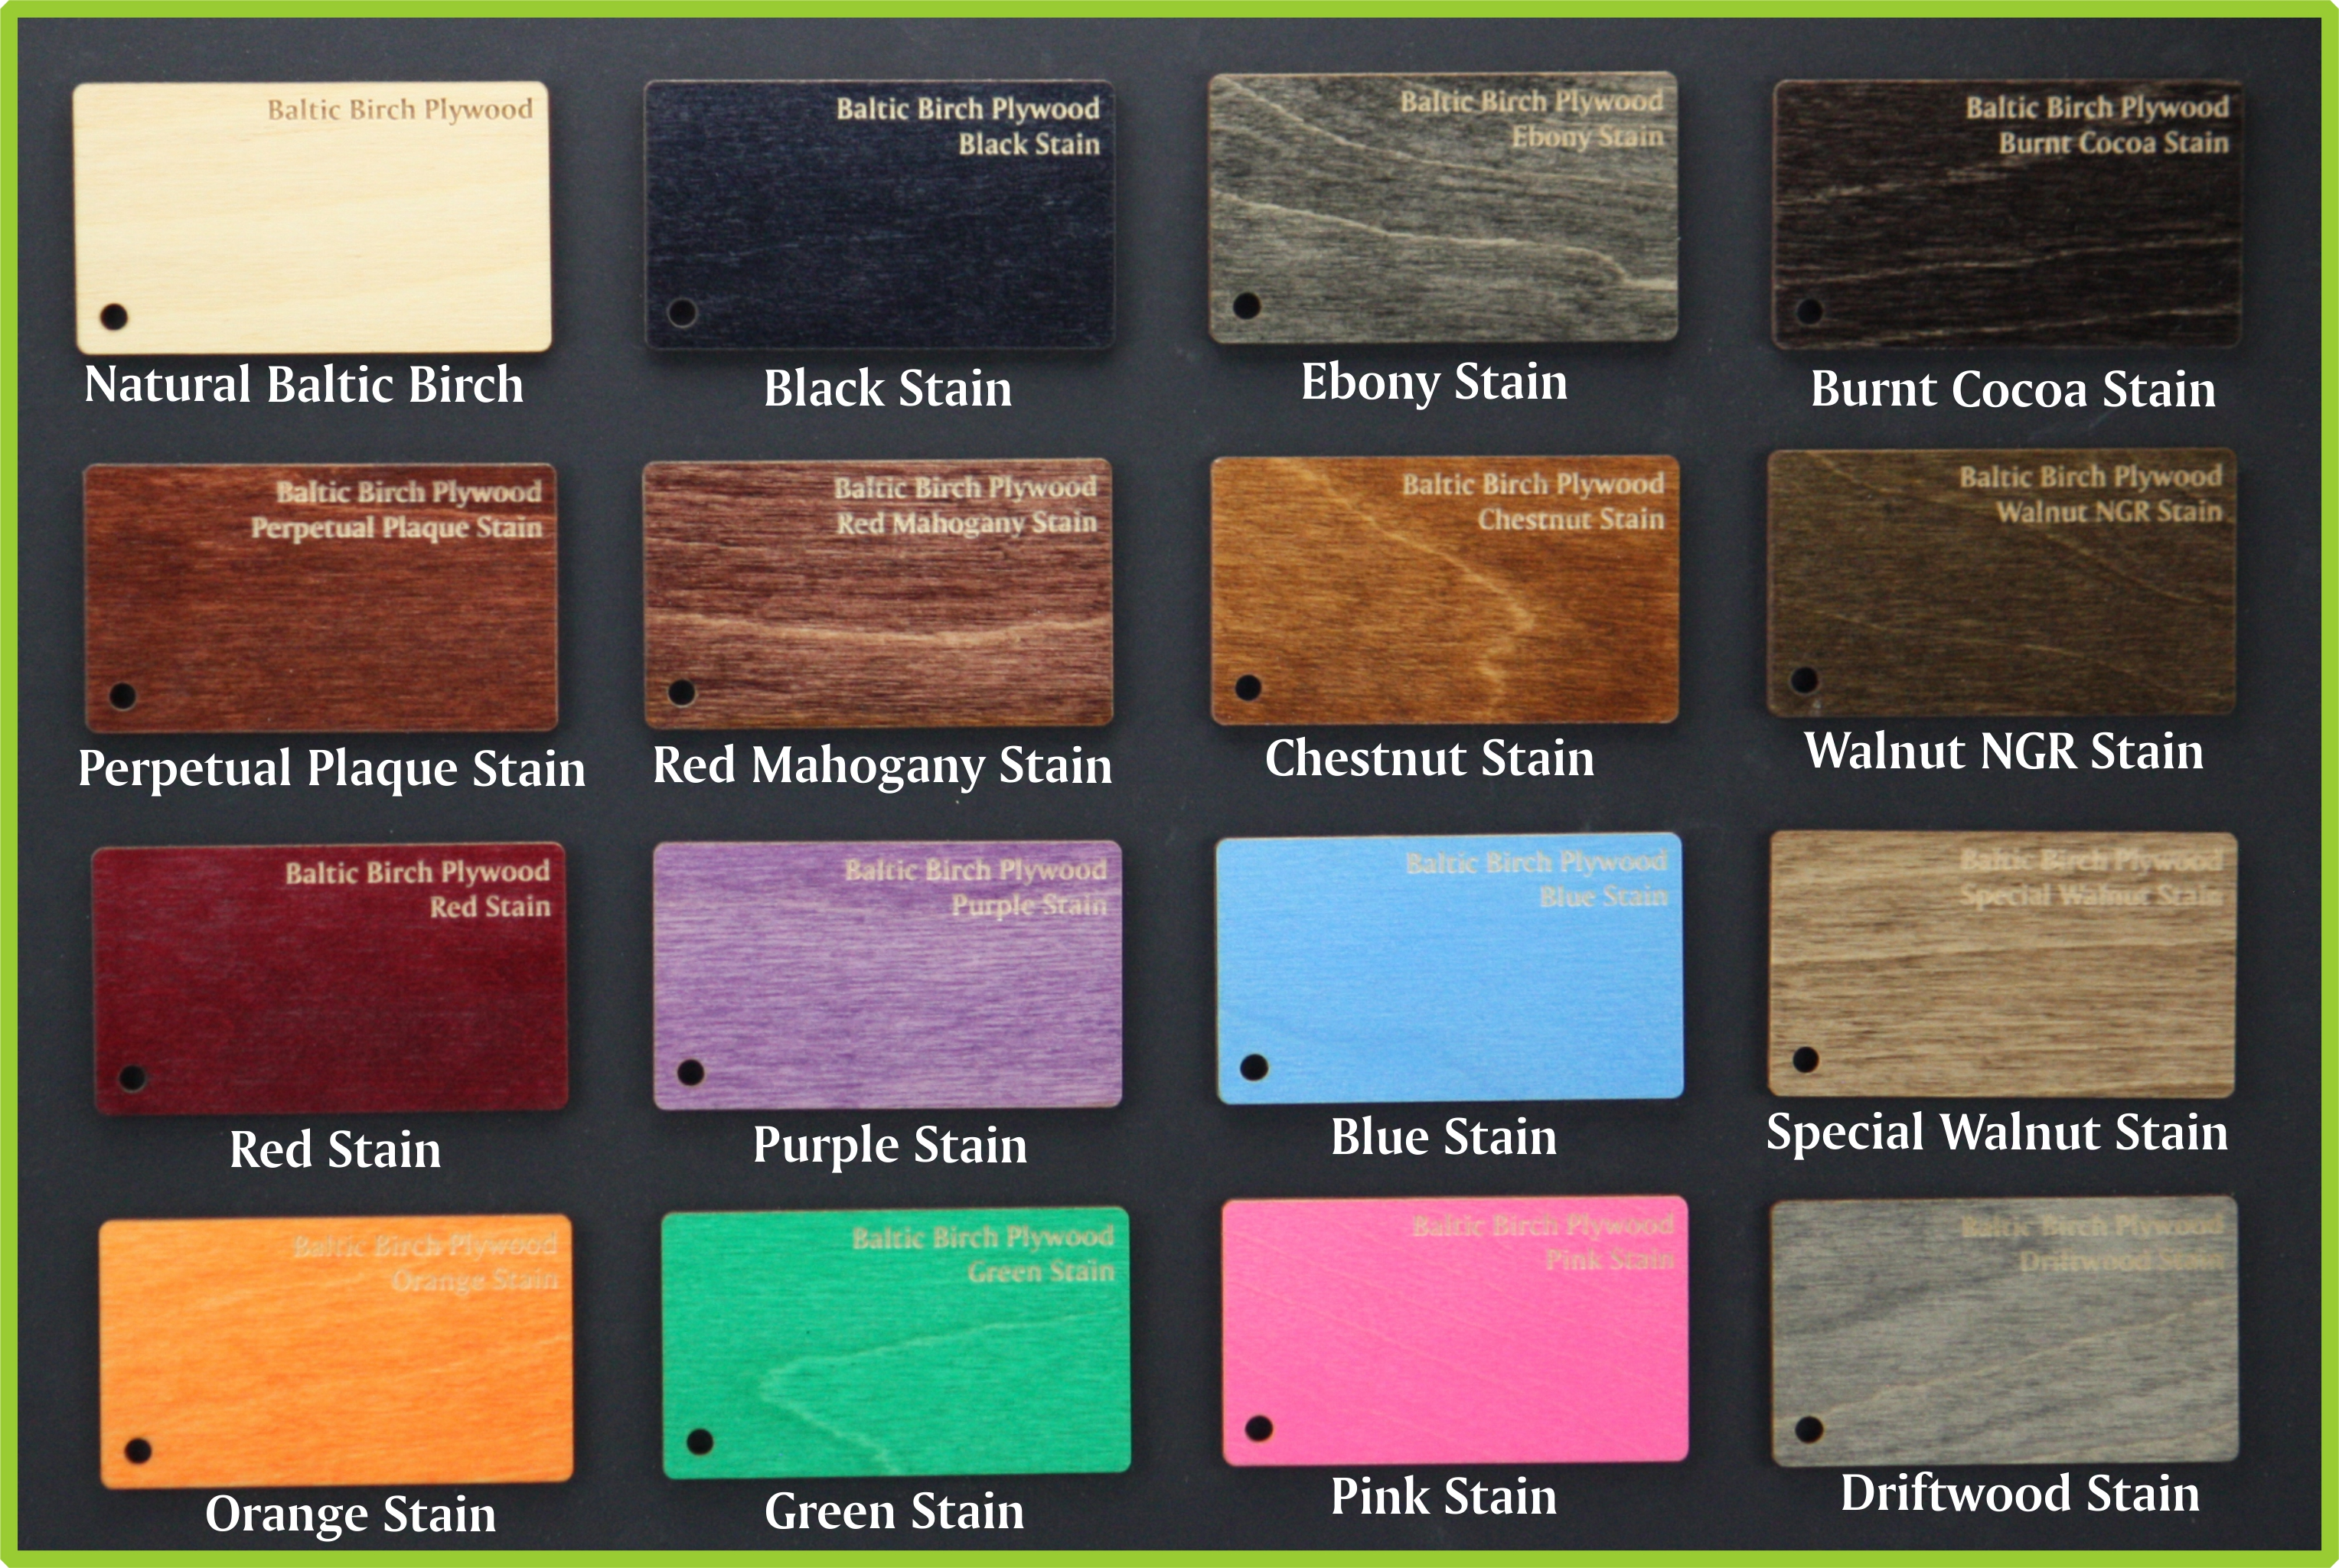 "Color Lacquer or Stained Hardwood Strip<br/> 4.5"" x 14.5"" x (1/16"", 3/32"" or 1/8"") - LSTC13-M-1/8"